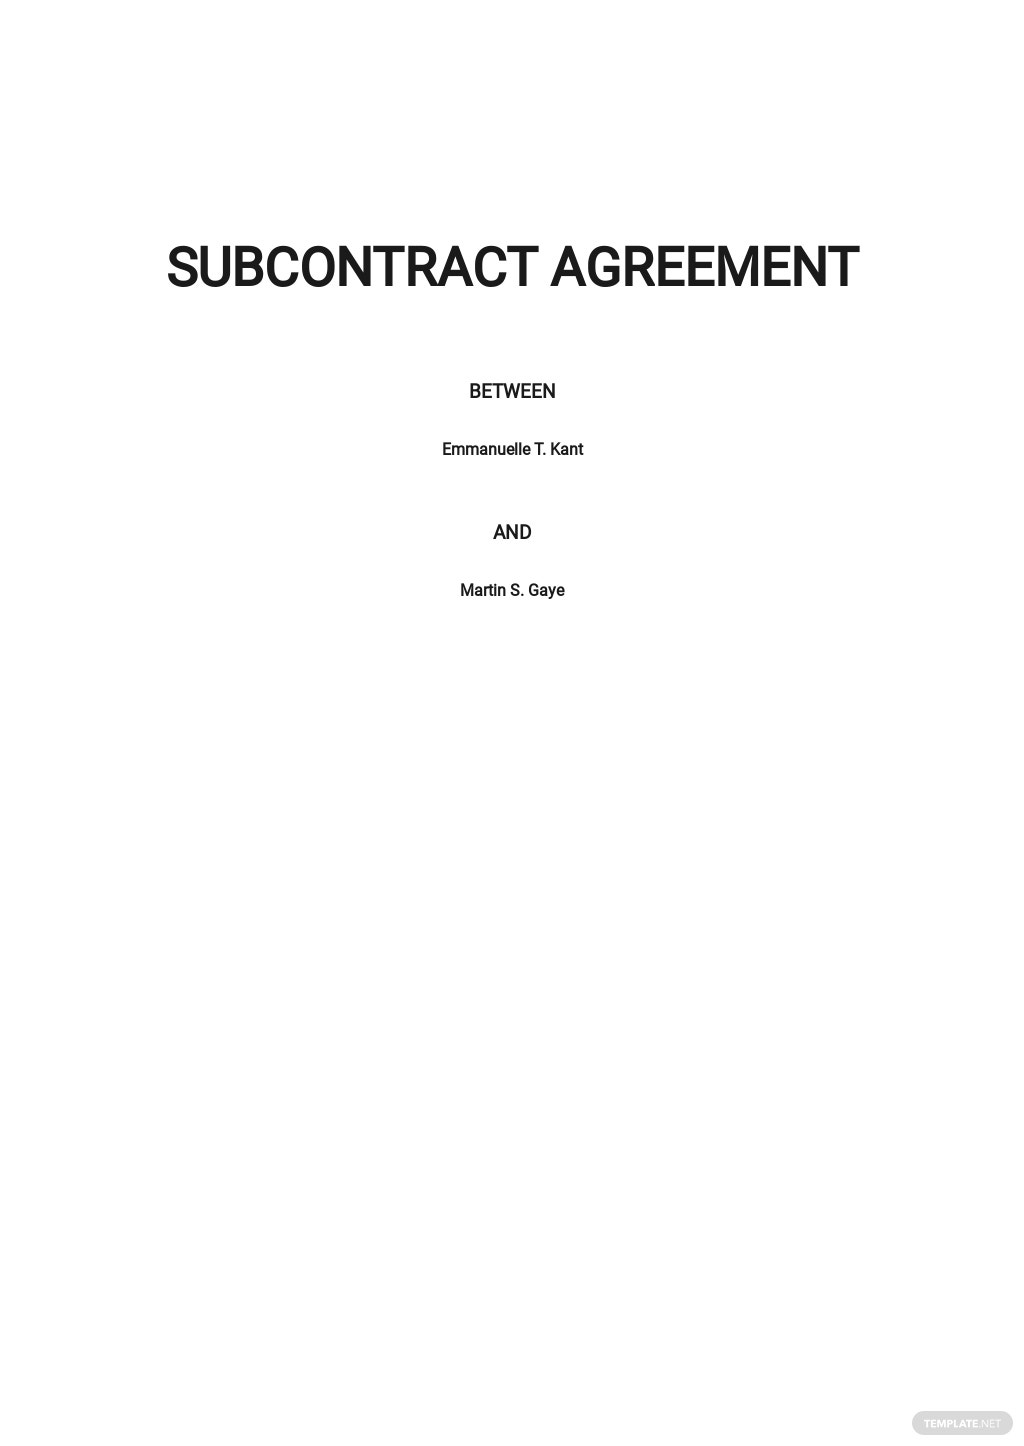 Basic Subcontract Agreement Template